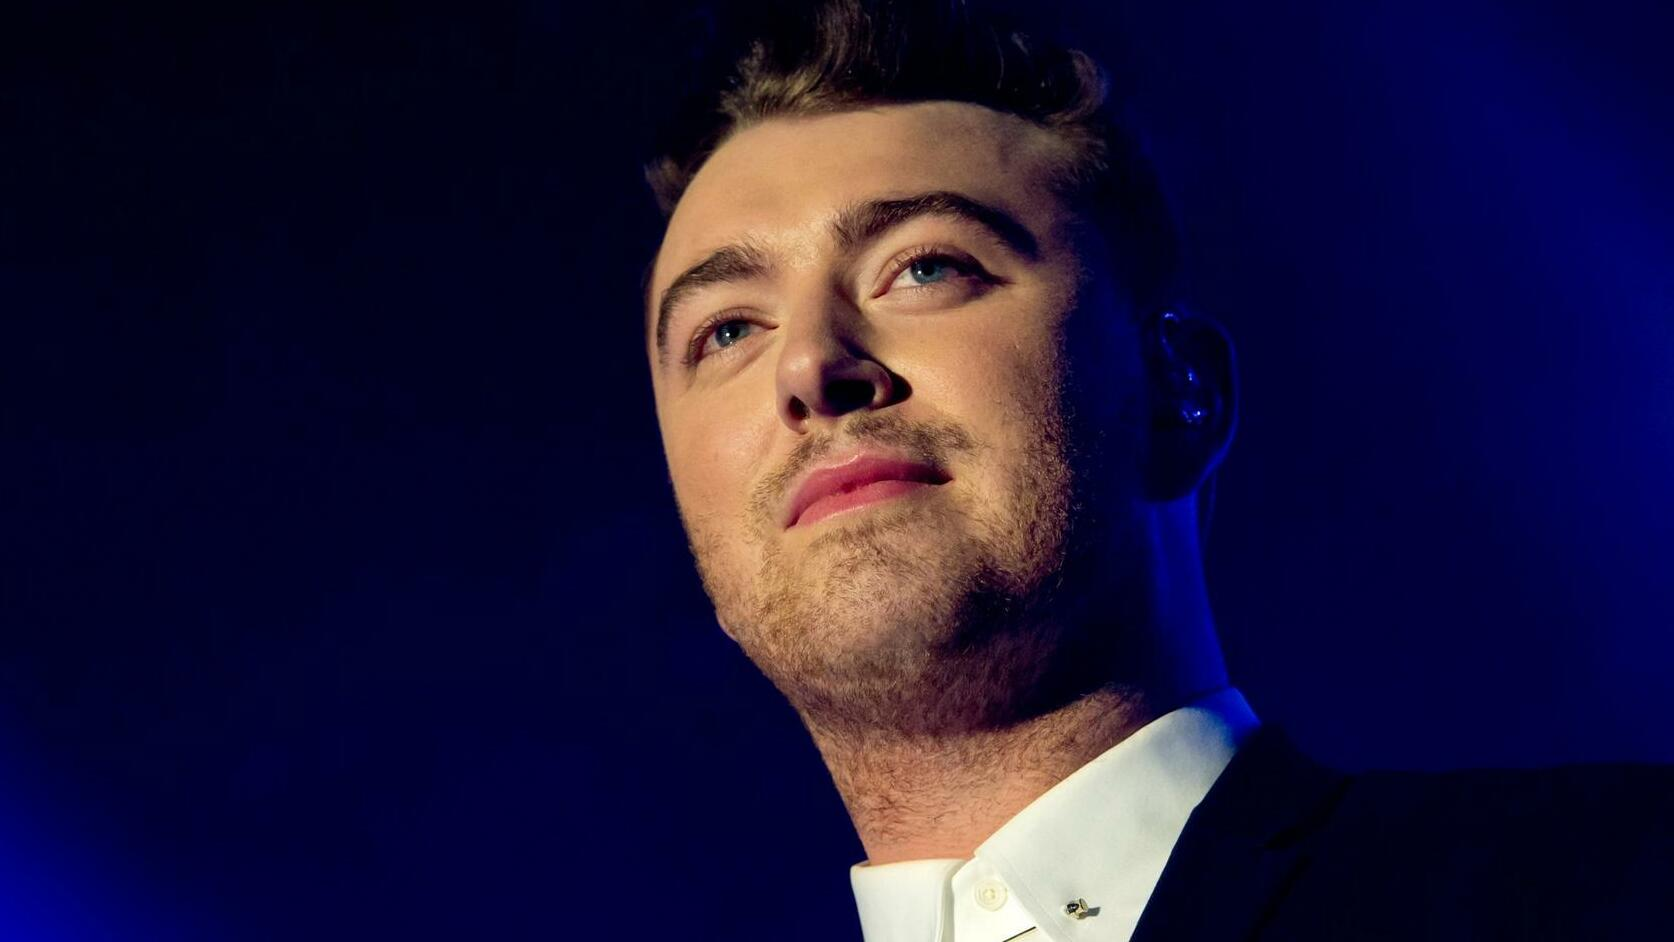 Sam Smith Quelle: dpa